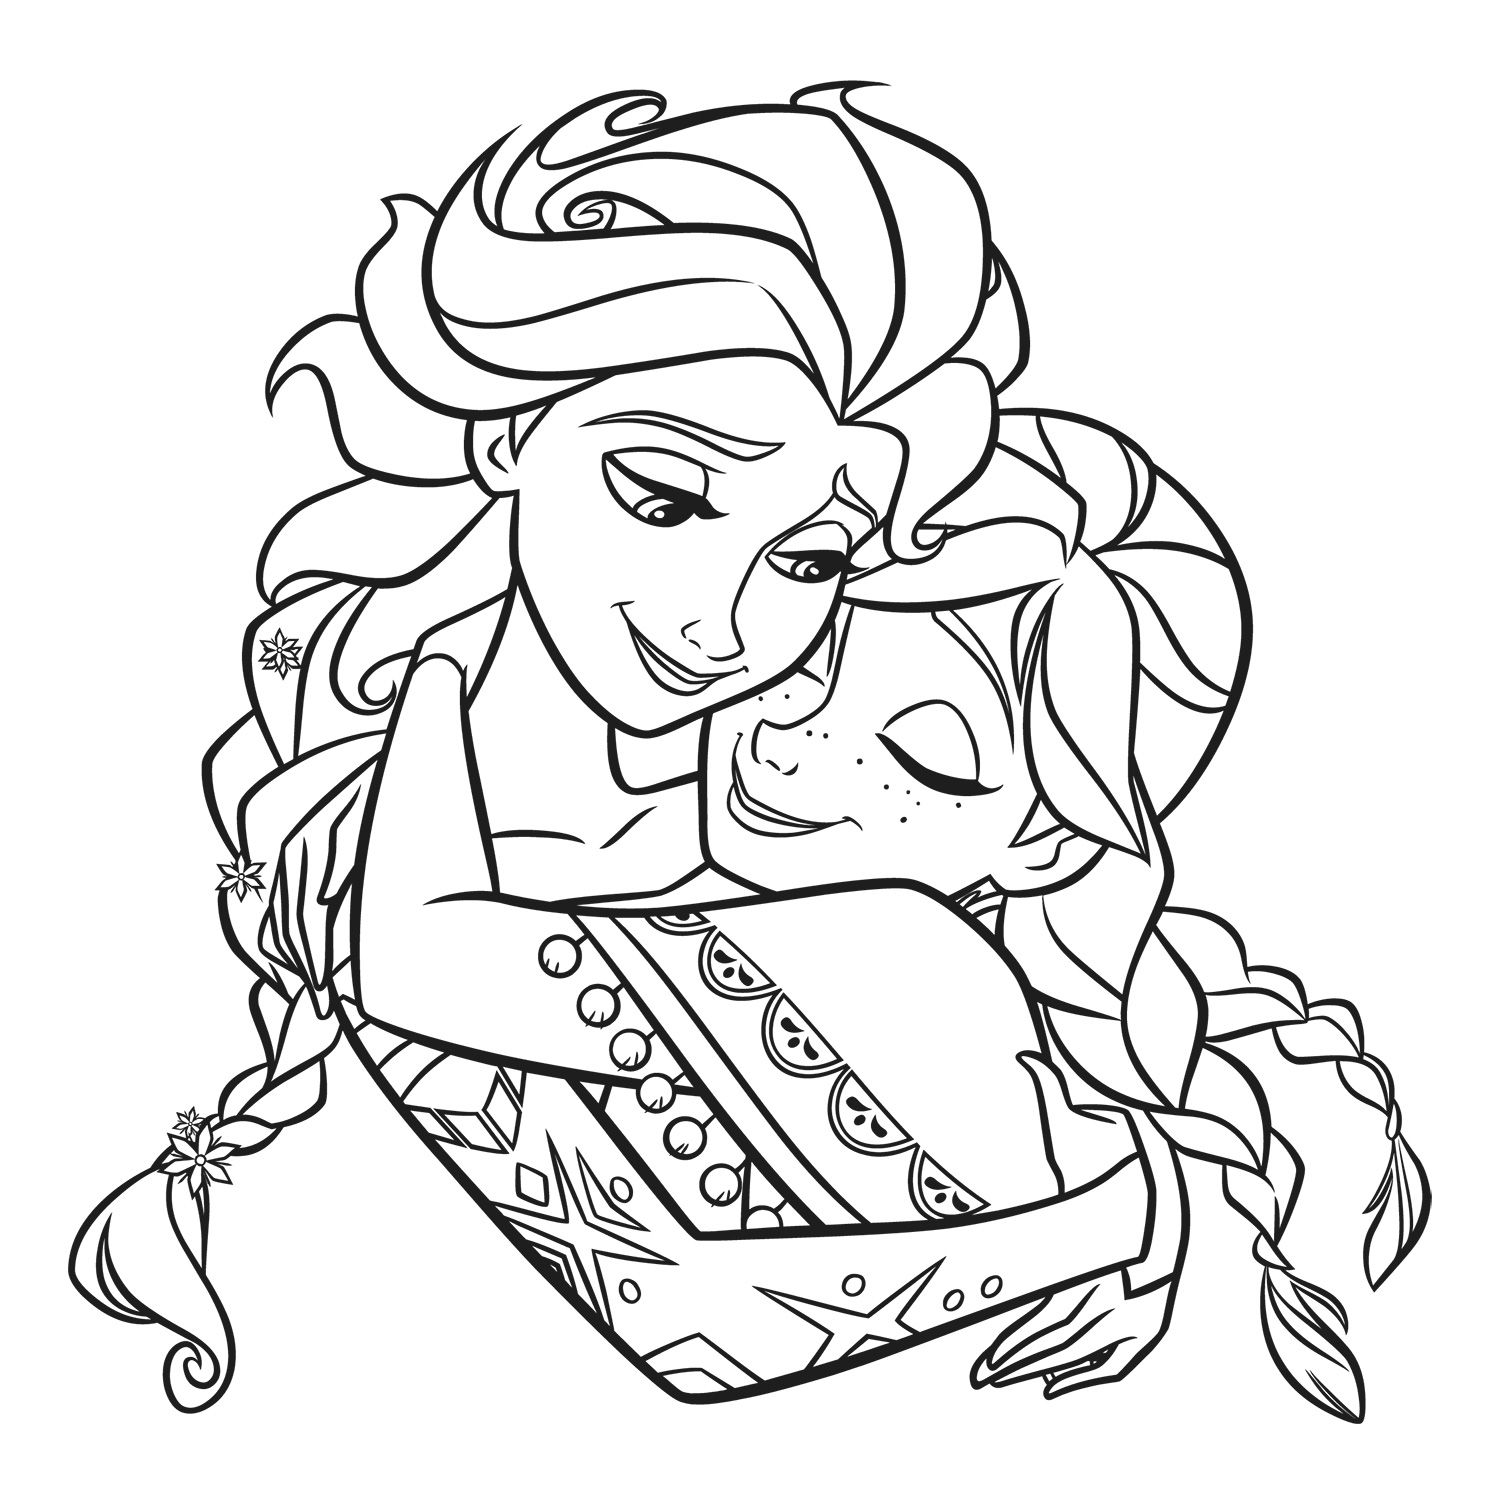 Winter princess coloring pages - Explore Frozen 1 Winter Princess And More